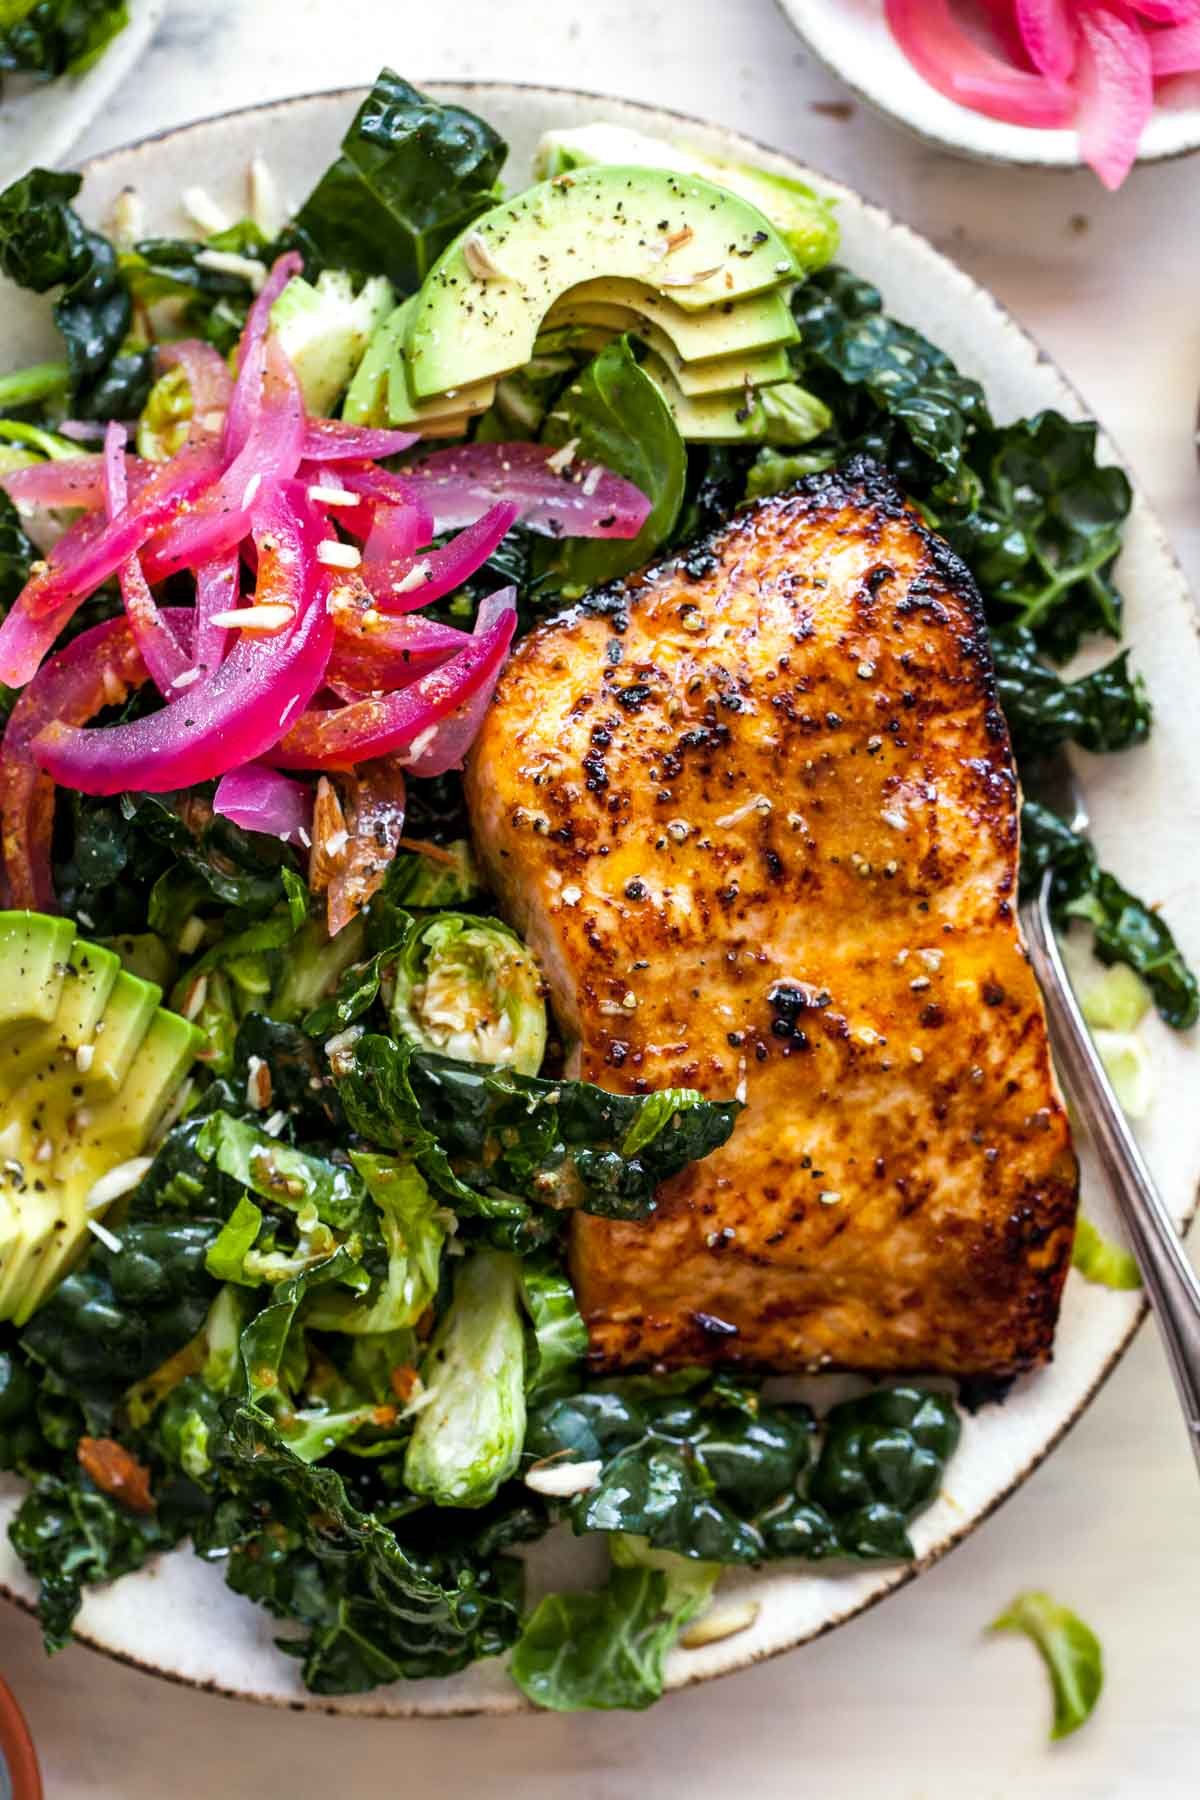 Close up view of cooked salmon fillet over kale salad with pickled red onion on top